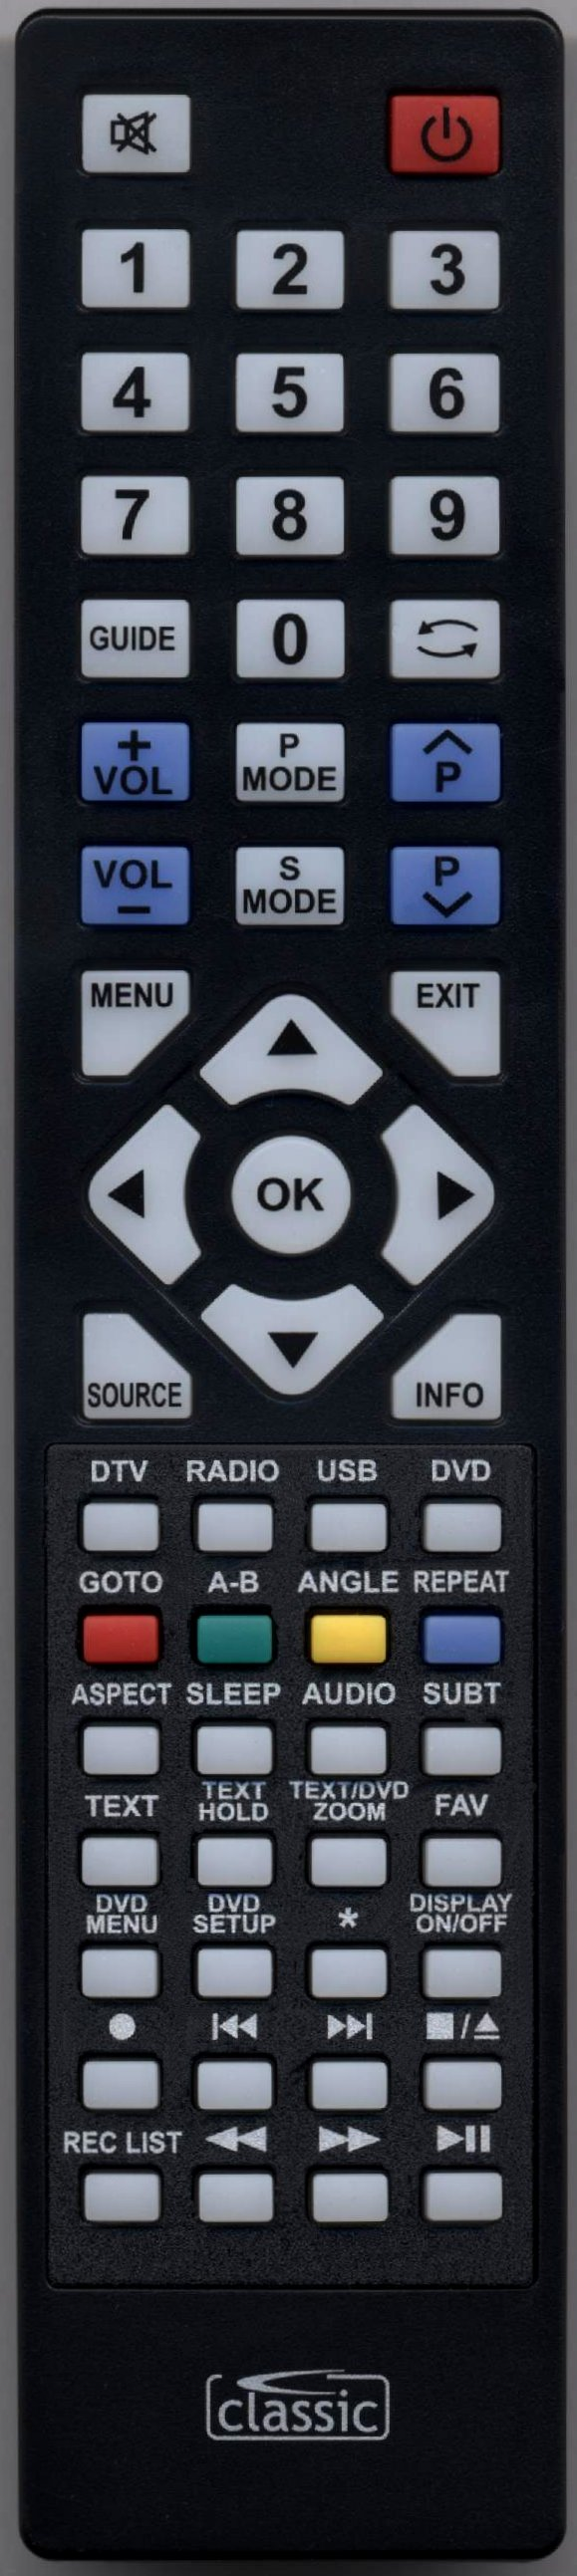 BLAUPUNKT 236/207I-GB-3B-FHDP-UK Remote Control Alternative